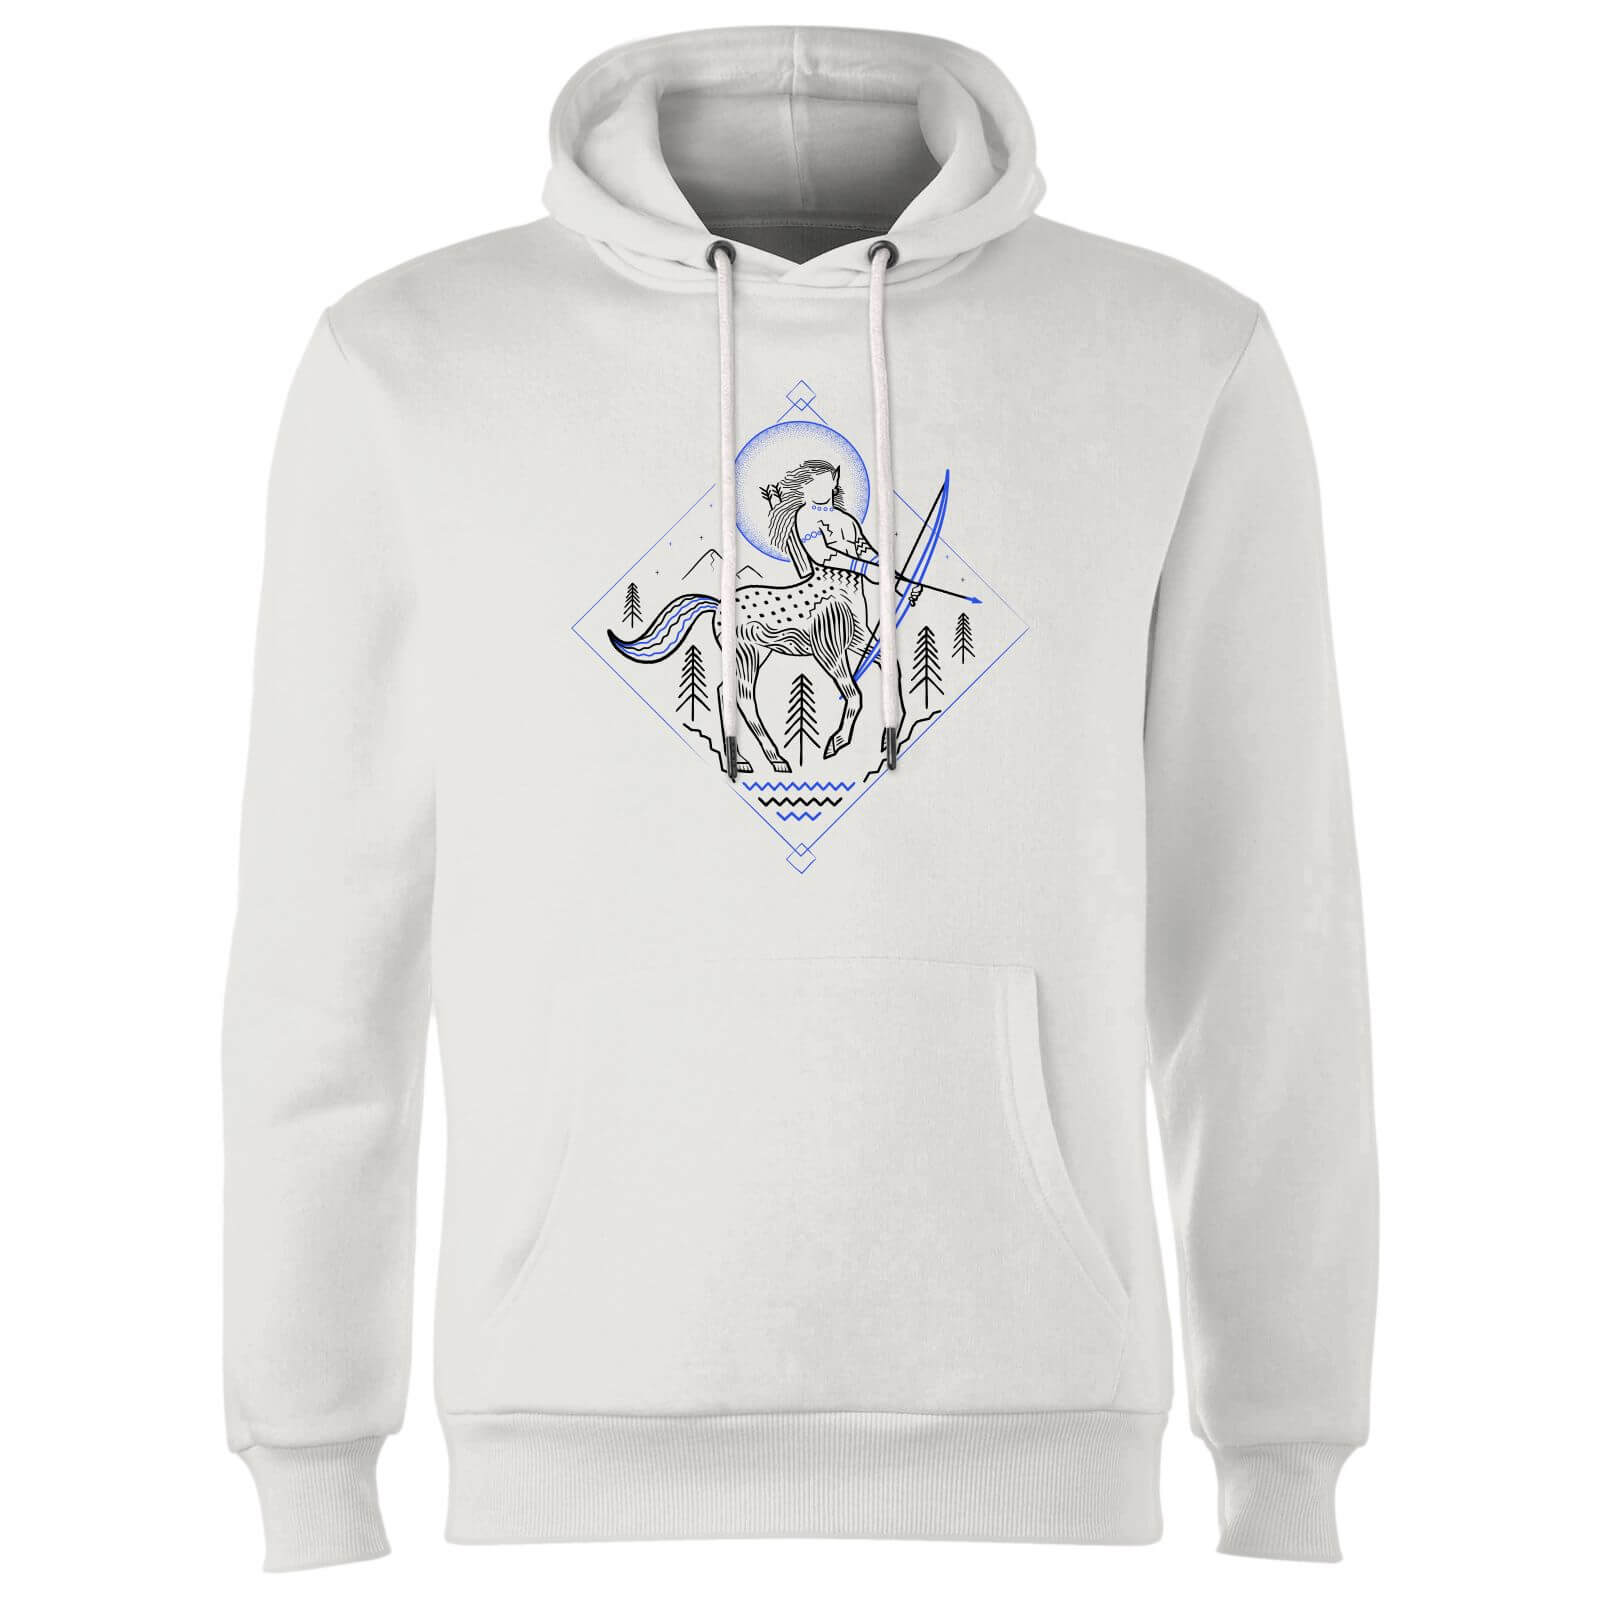 Harry Potter Centaur Line Art Hoodie - White